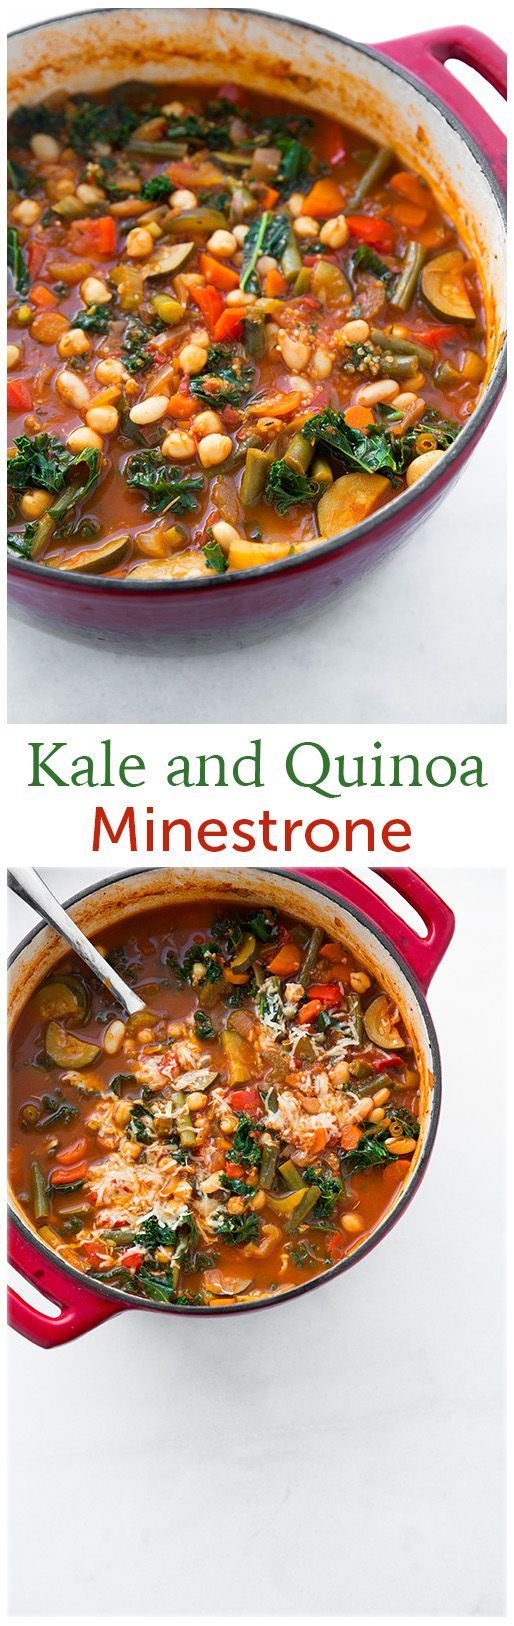 Kale and Quinoa Minestrone - this healthy soup is AMAZING! I'll make this again and again!